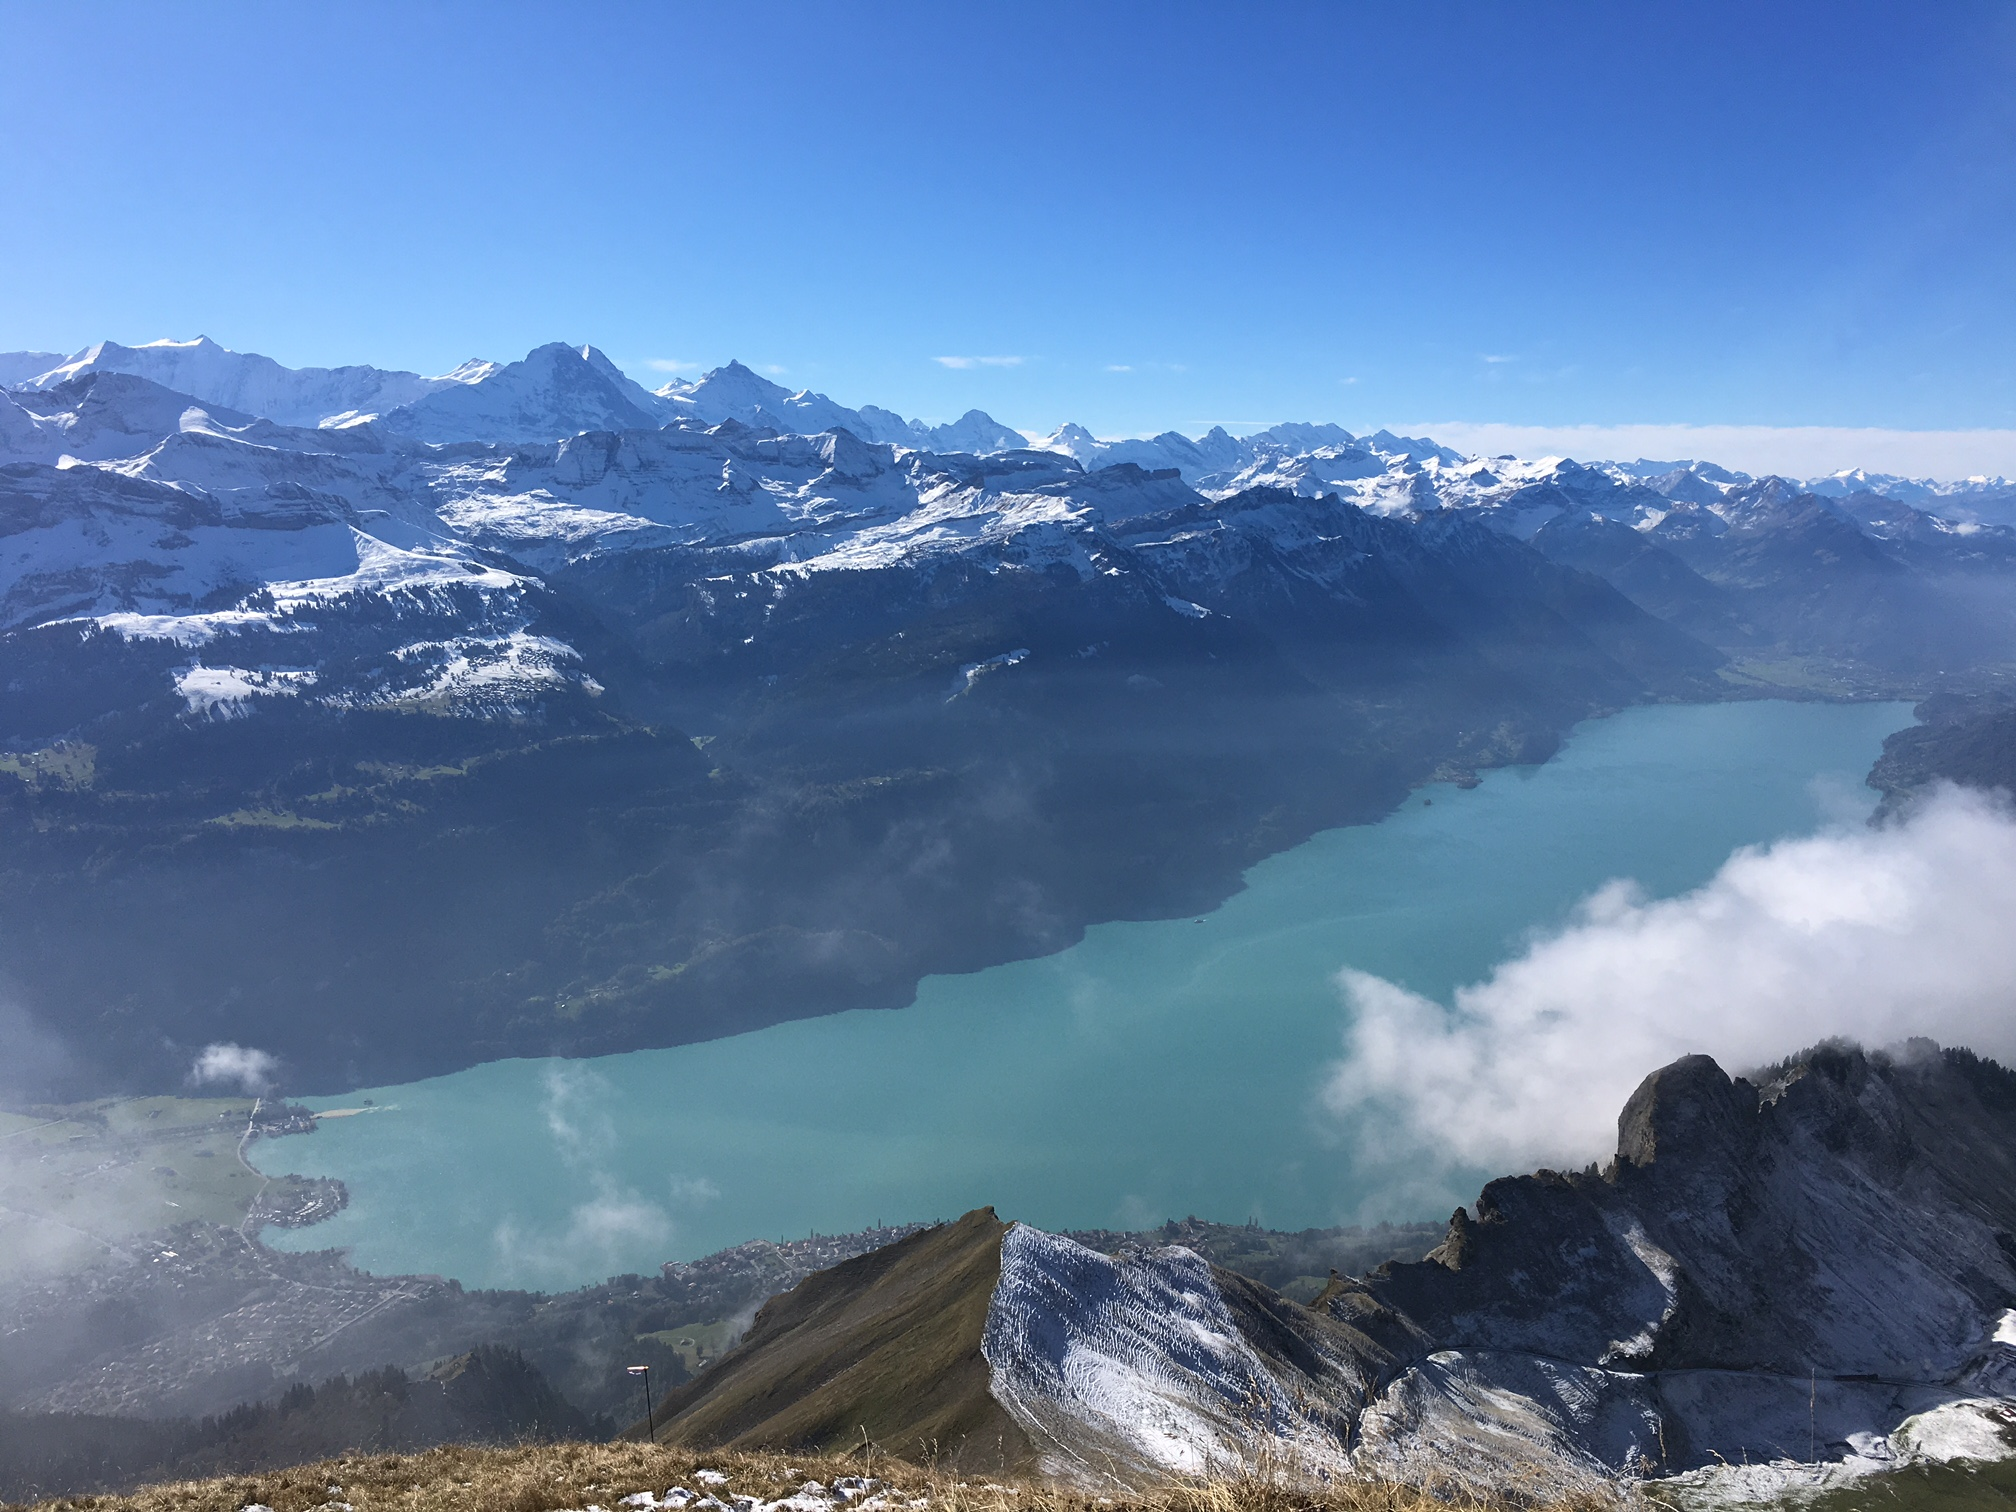 WOW view from the Rothorn in Switzerland